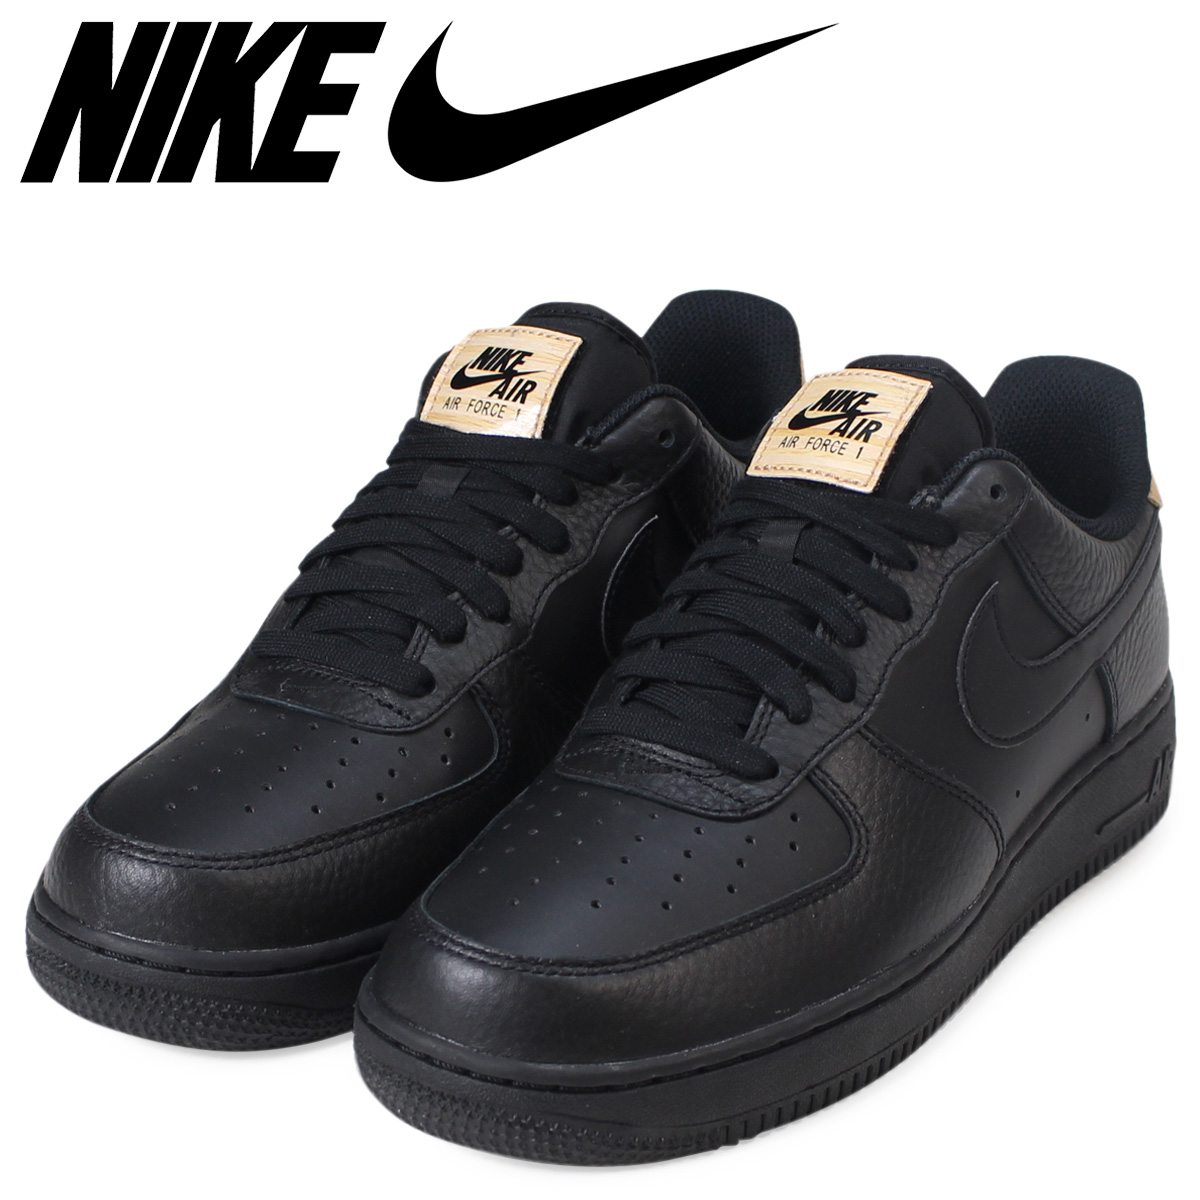 NIKE Nike air force sneakers AIR FORCE 1 LOW LEATHER TONGUE 718,152 016 men's shoes black black